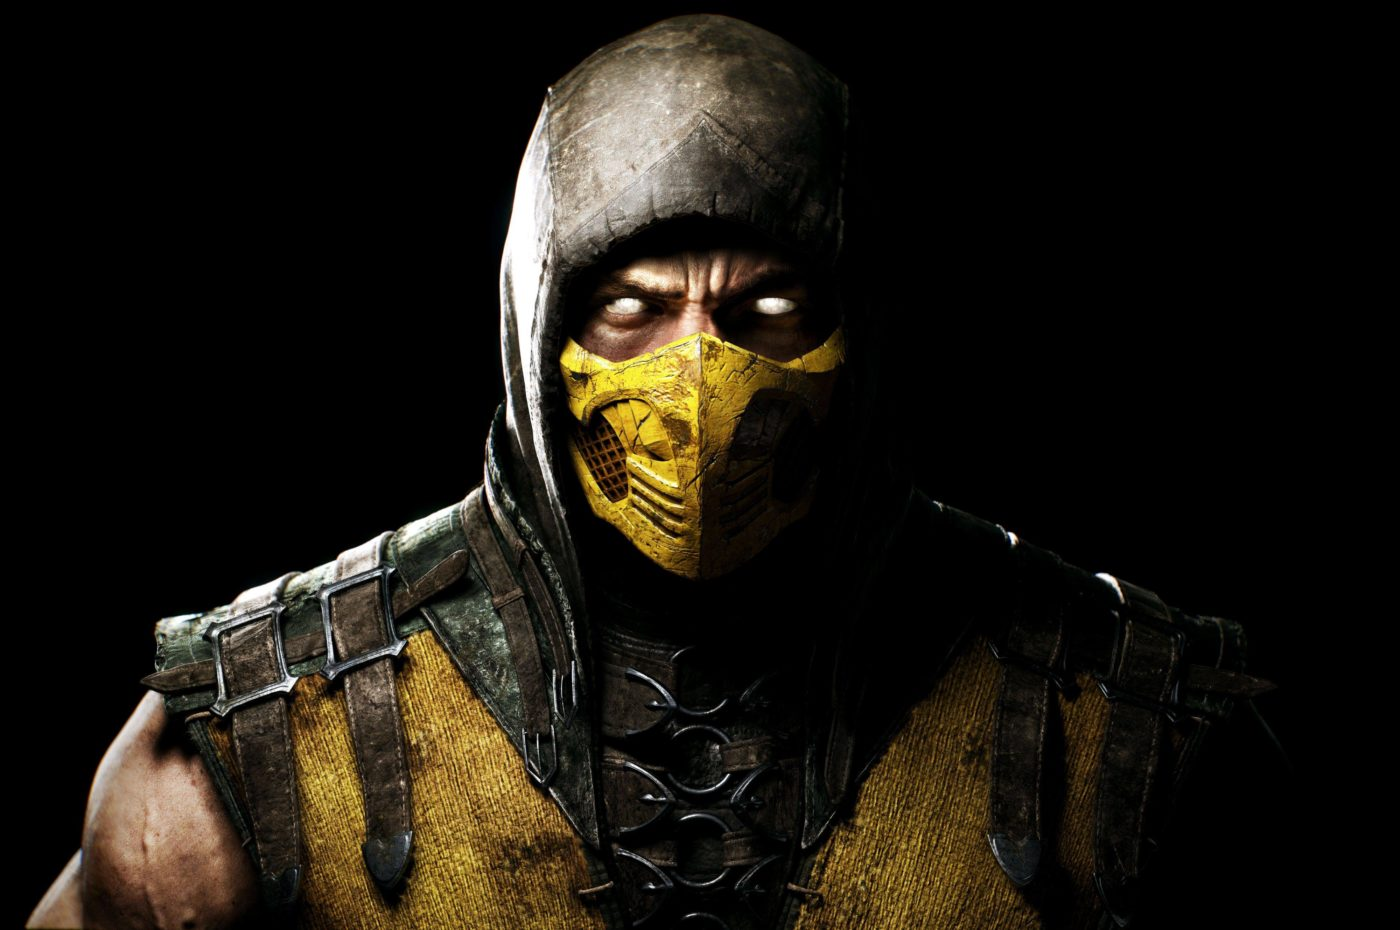 Data Mined Mortal Kombat X Files Reveal More Skin Packs And